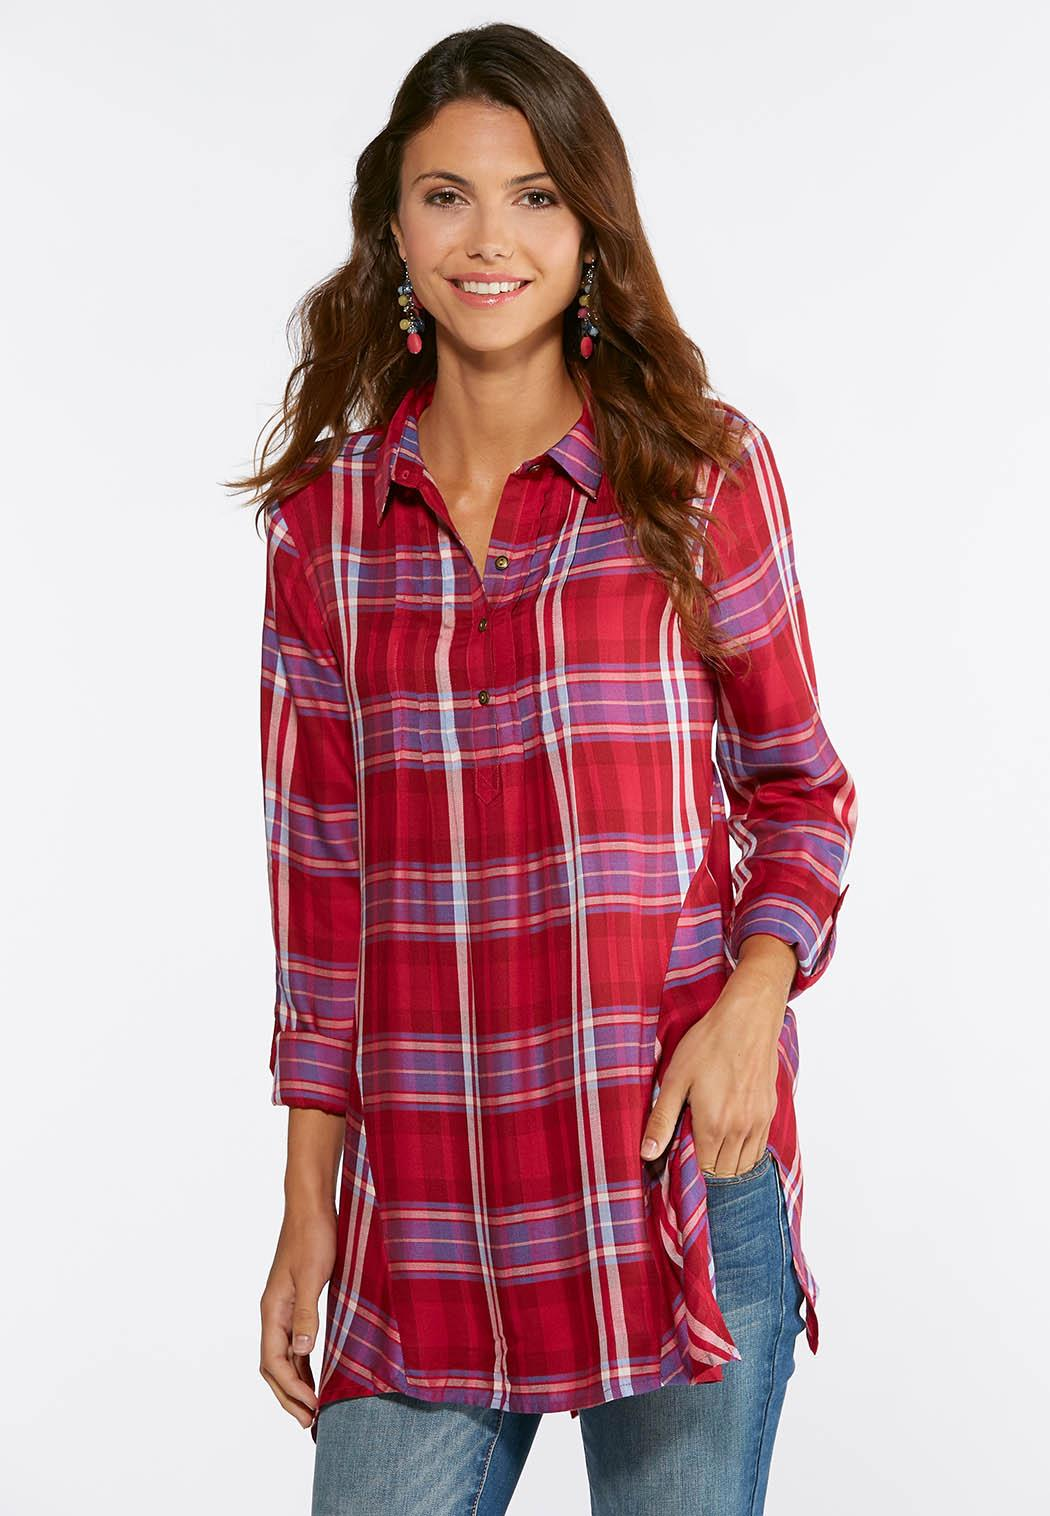 Womens Plus Size Red Plaid Flannel Shirt Toffee Art